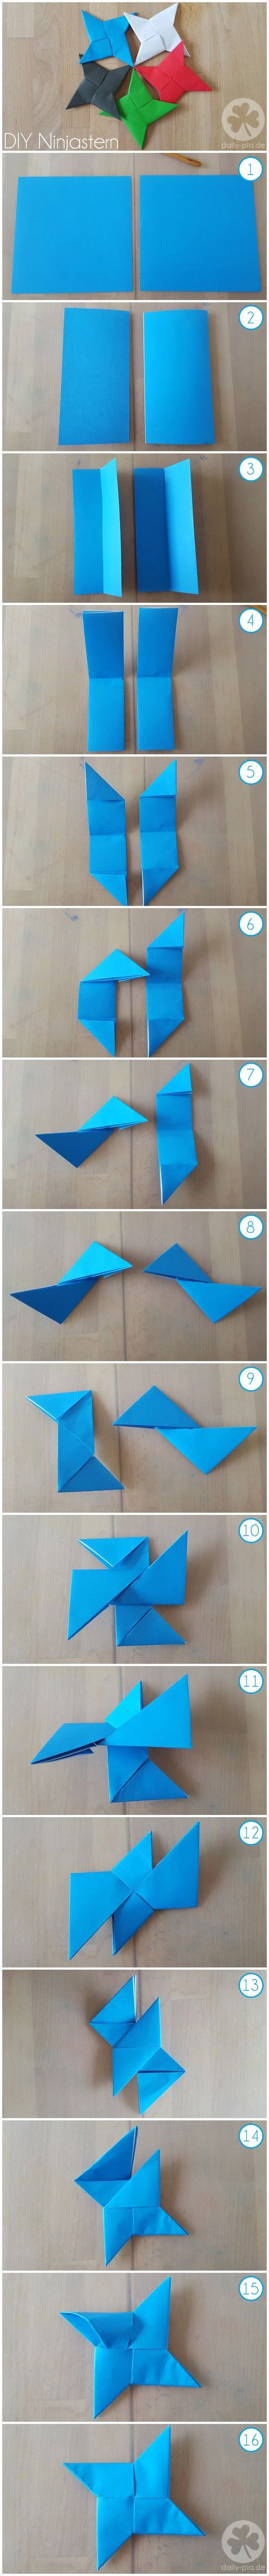 Origami Ninja Stars from Wonder Kids